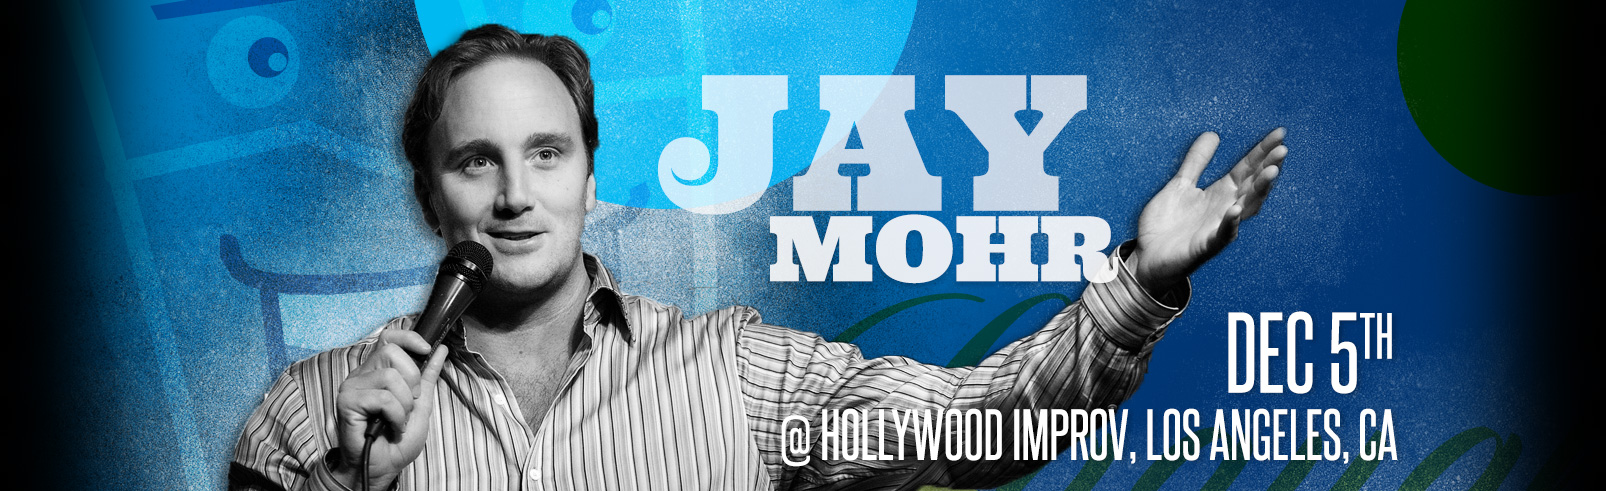 Jay Mohr @ Hollywood Improv